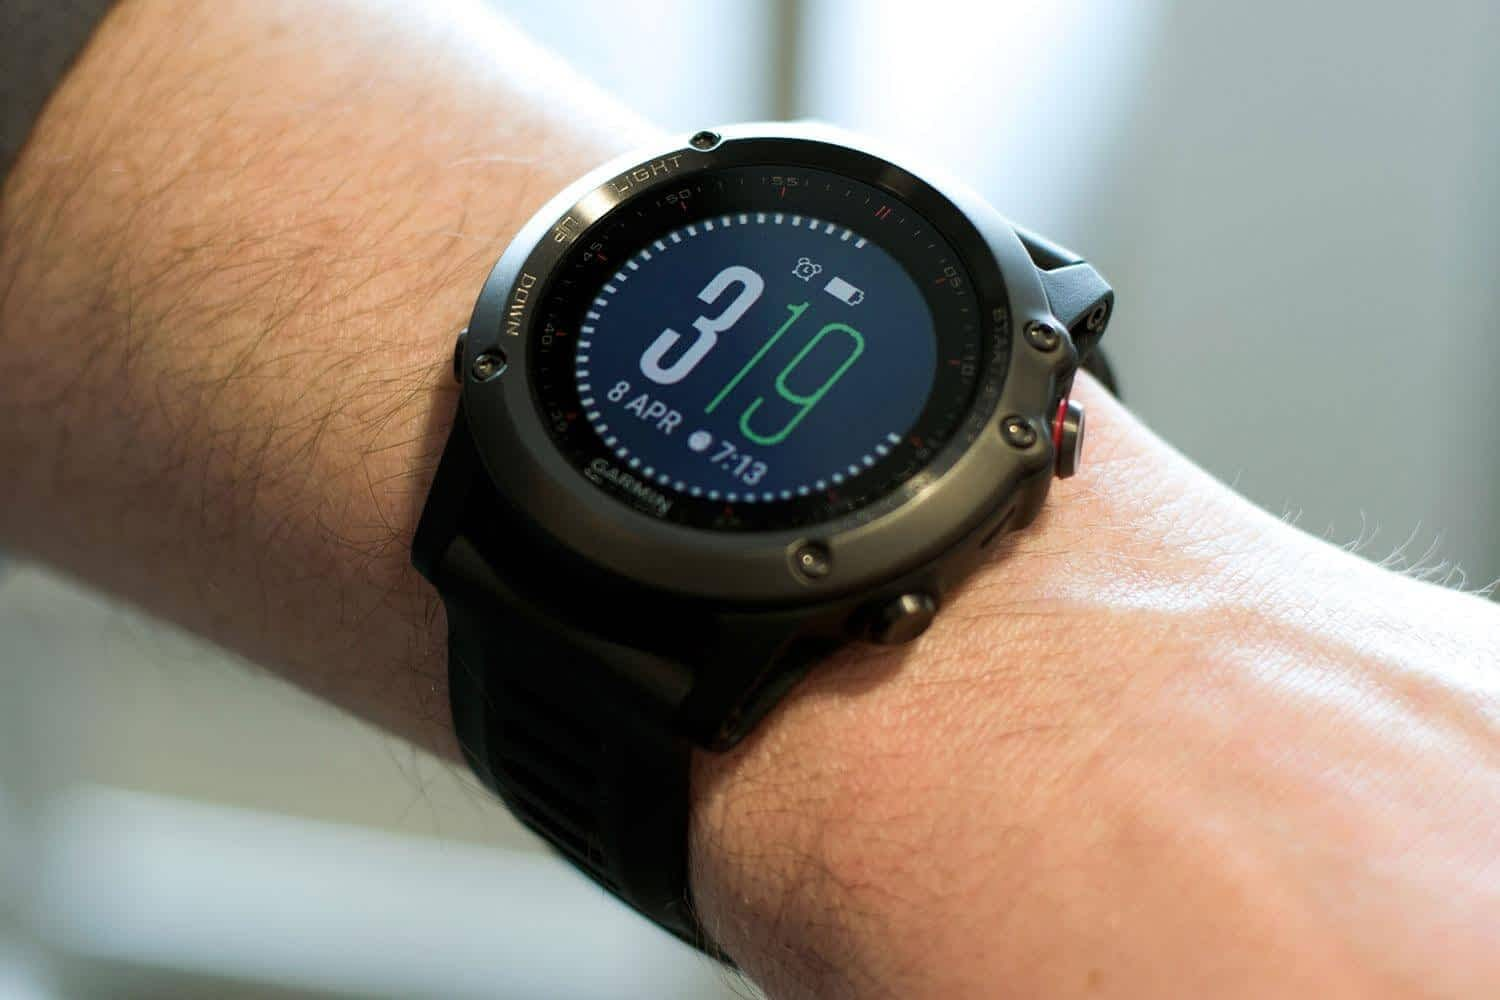 garmin-fenix-3-on-wrist_-1500x1000